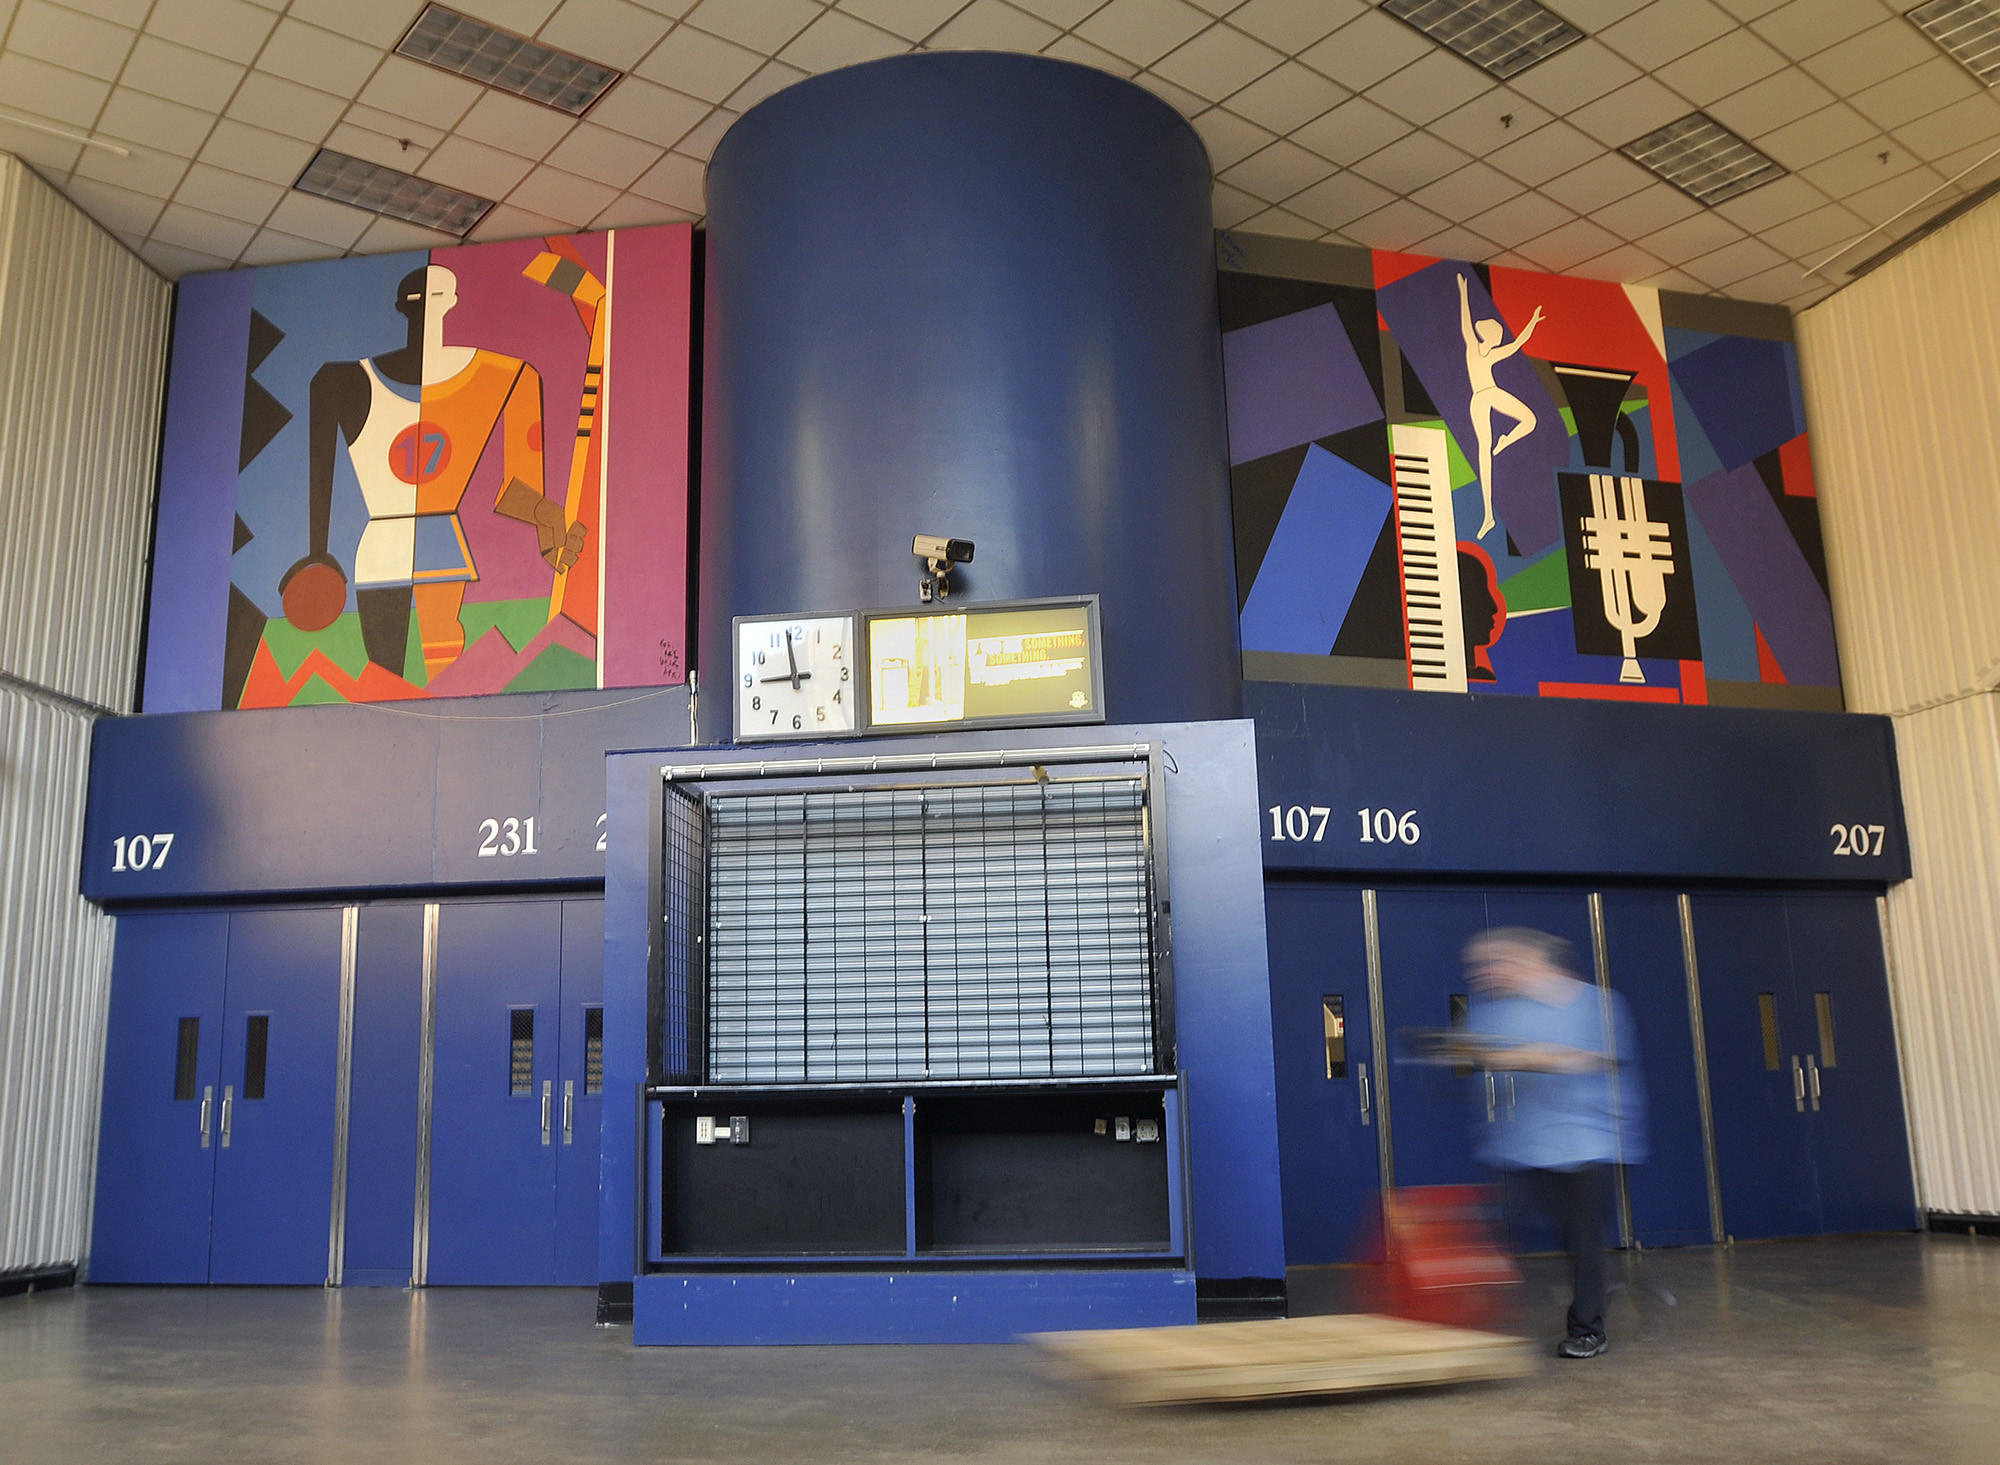 Two murals of Romare Bearden, currently housed at the XL Center, will be moved to a new location before the restoration of the building.